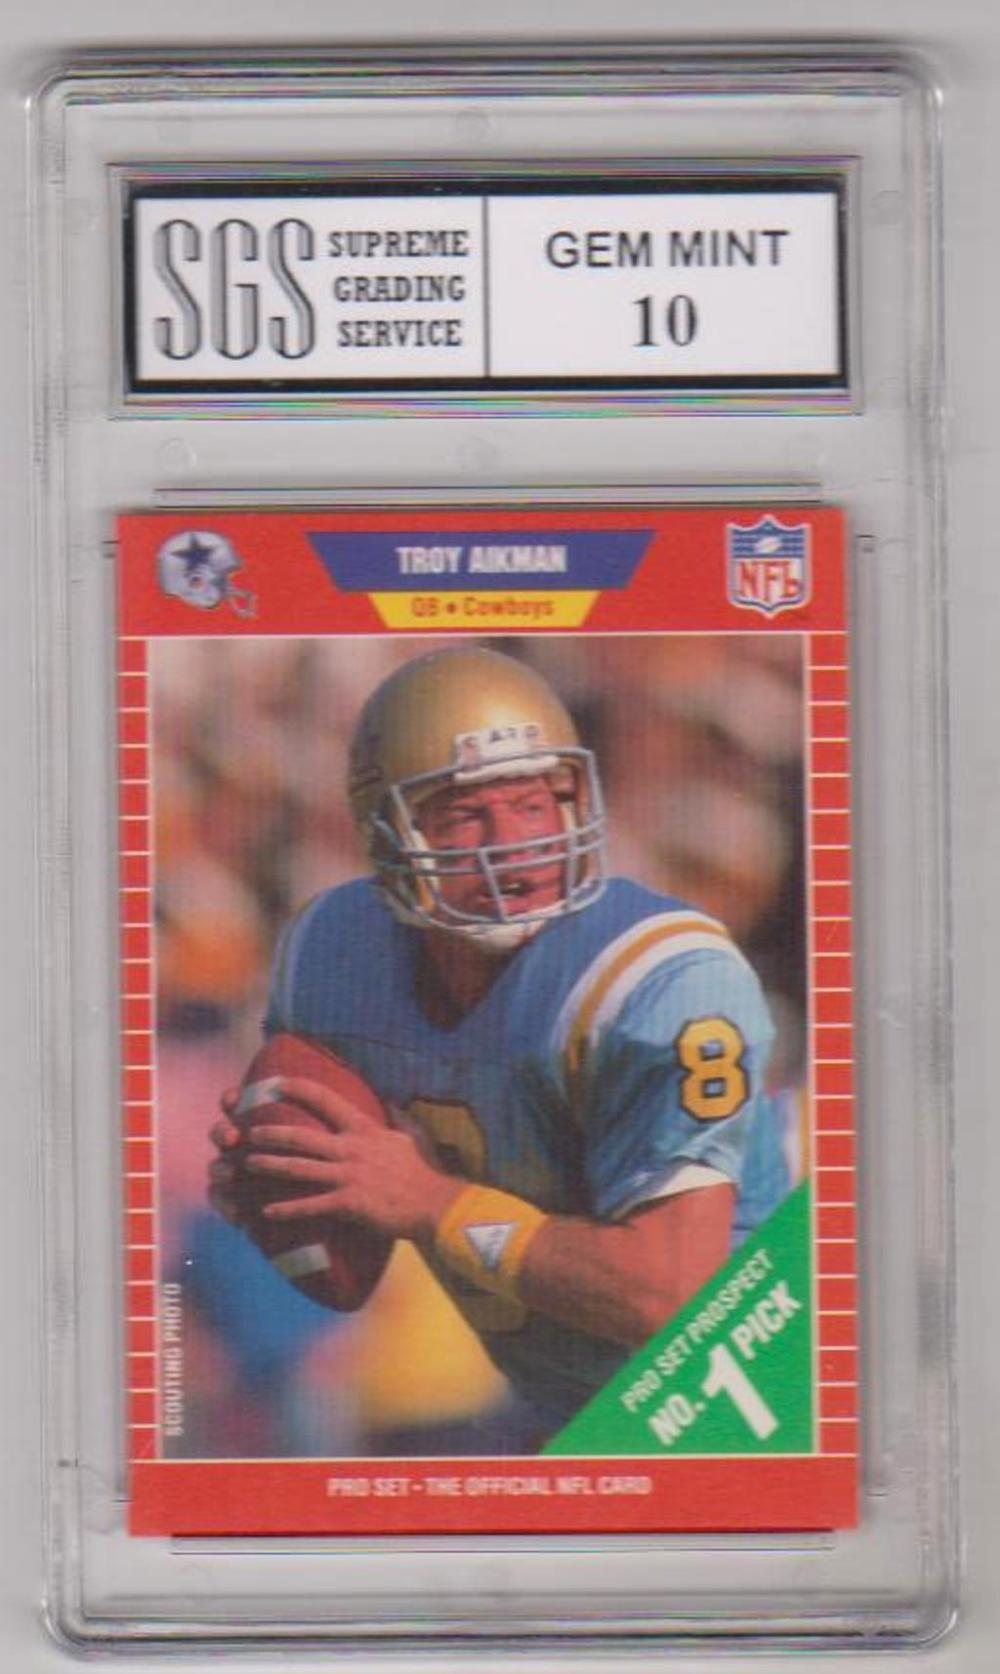 Rookie Graded Gem Mint 10 Troy Aikman 1989 Pro Set #490 Card